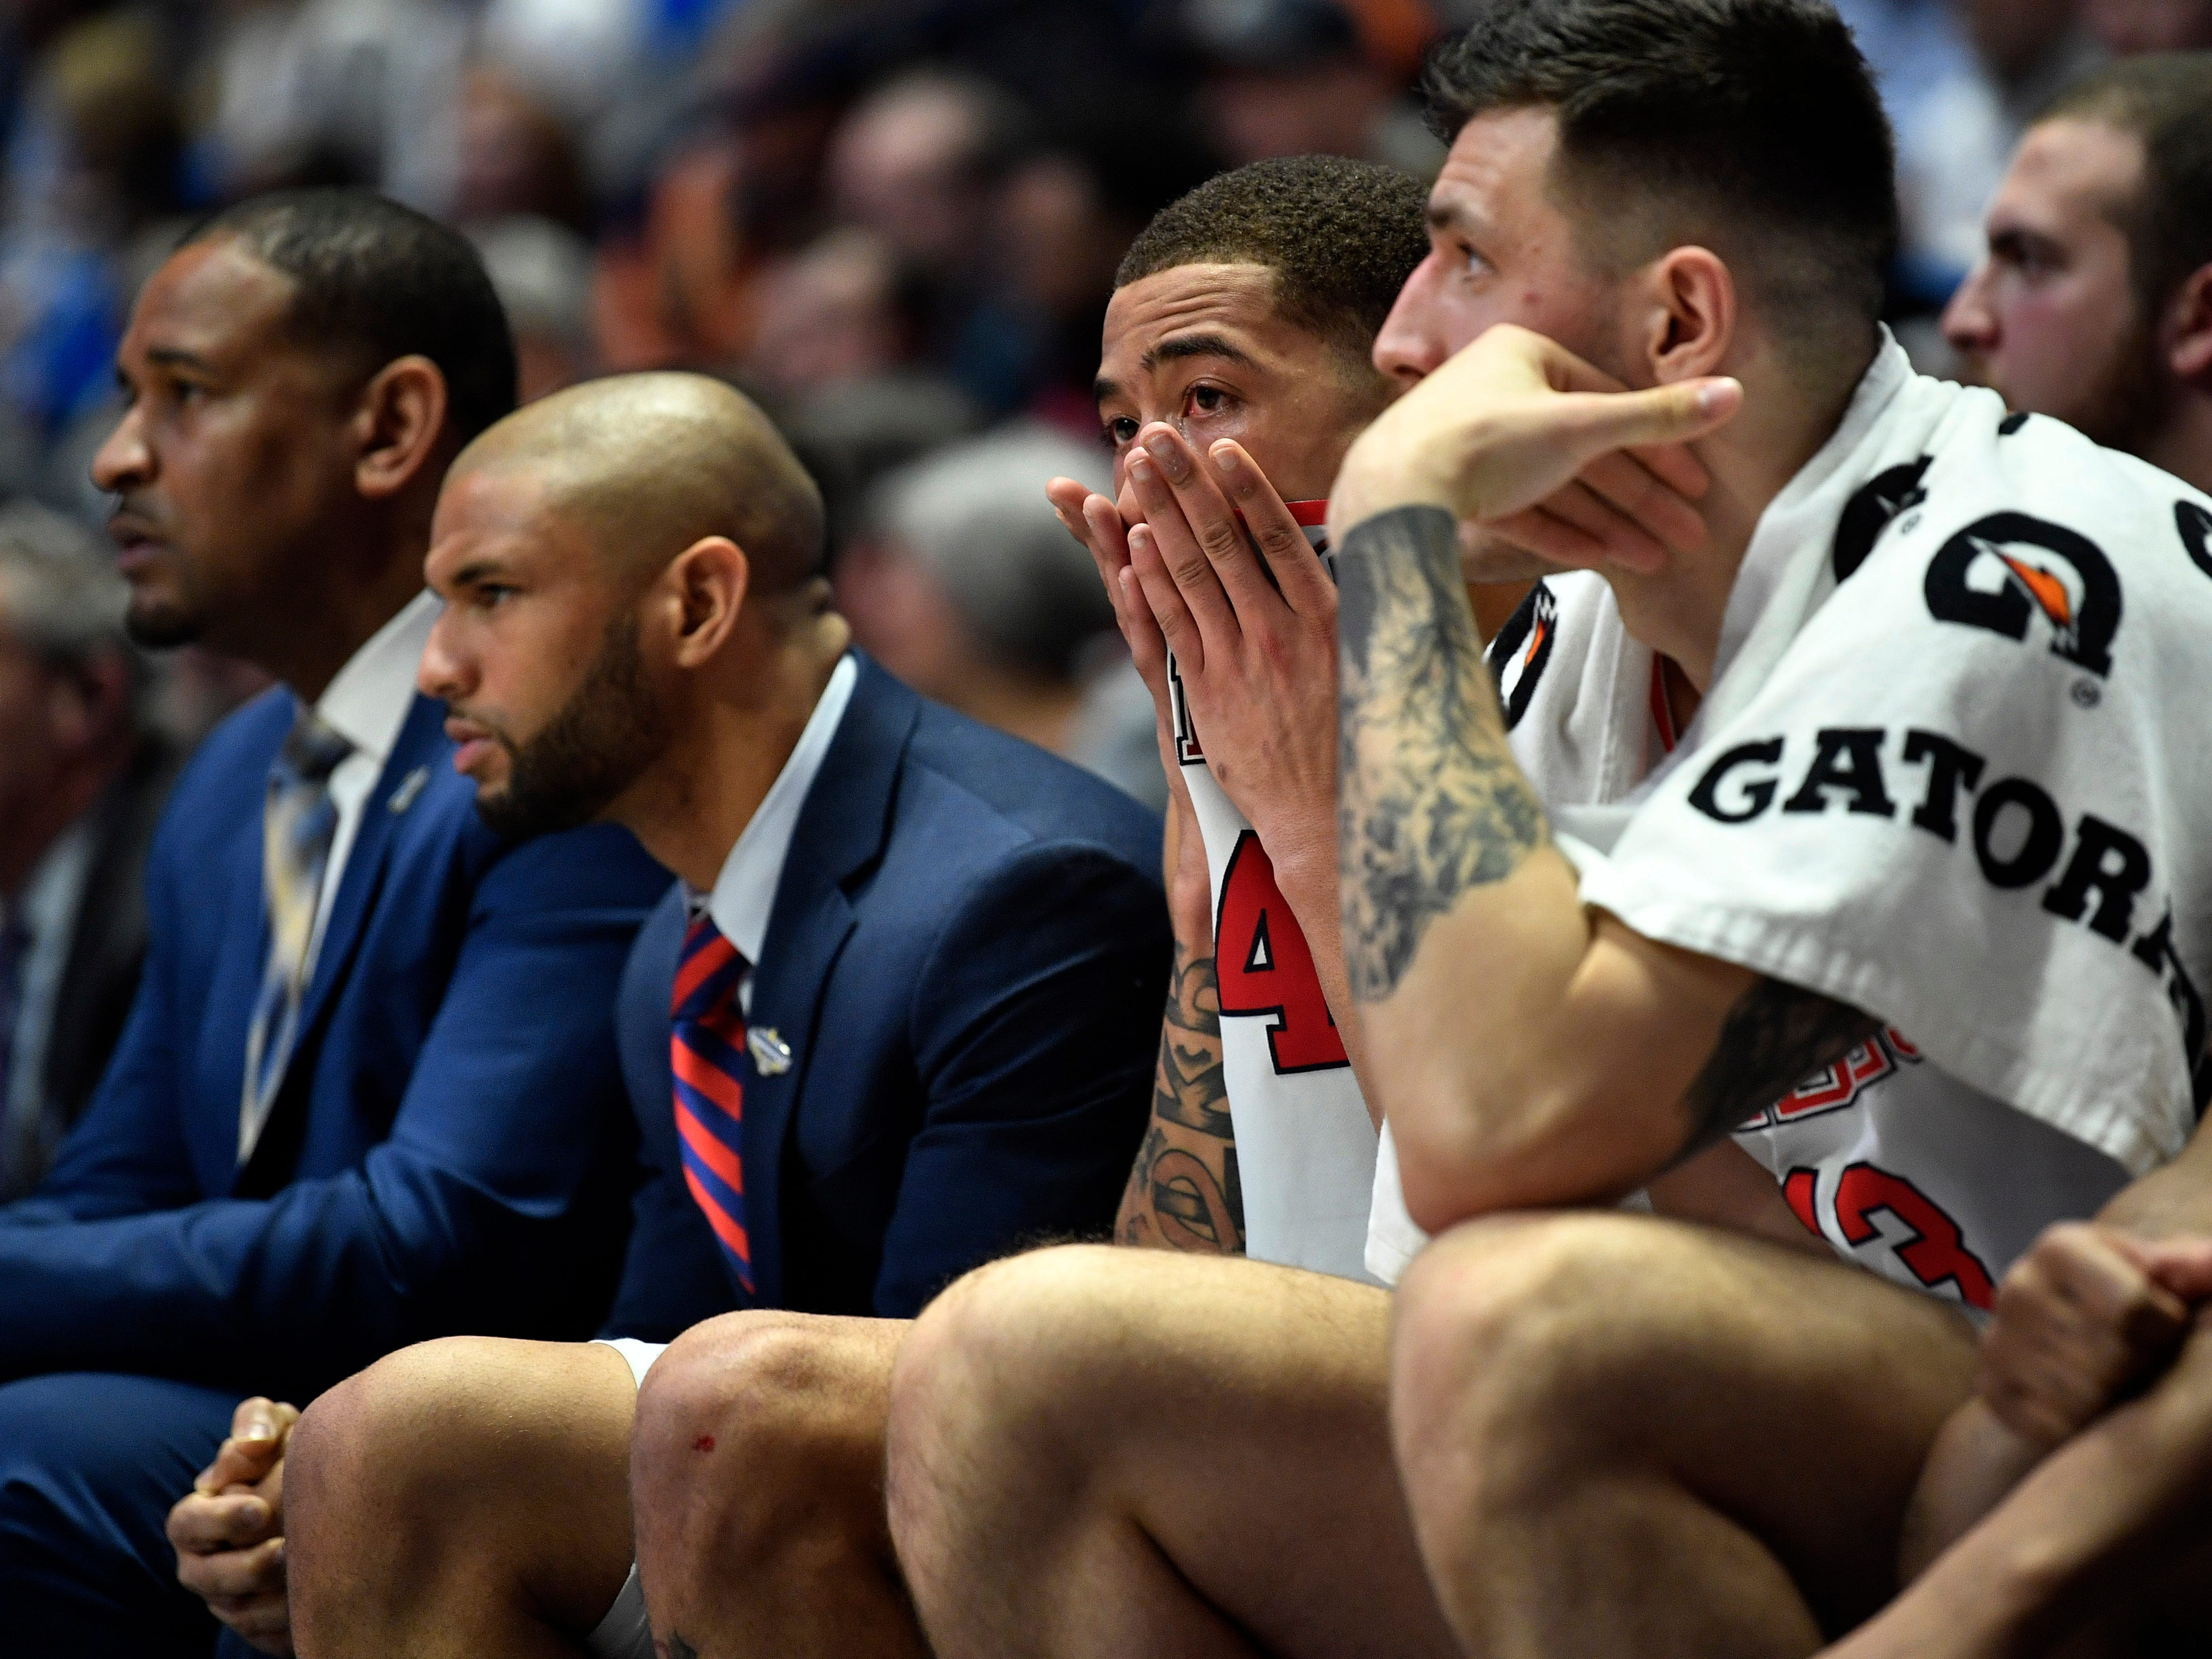 Ole Miss reacts on the bench during the closing minutes of the SEC Men's Basketball Tournament loss to Alabama at Bridgestone Arena in Nashville, Tenn., Thursday, March 14, 2019.